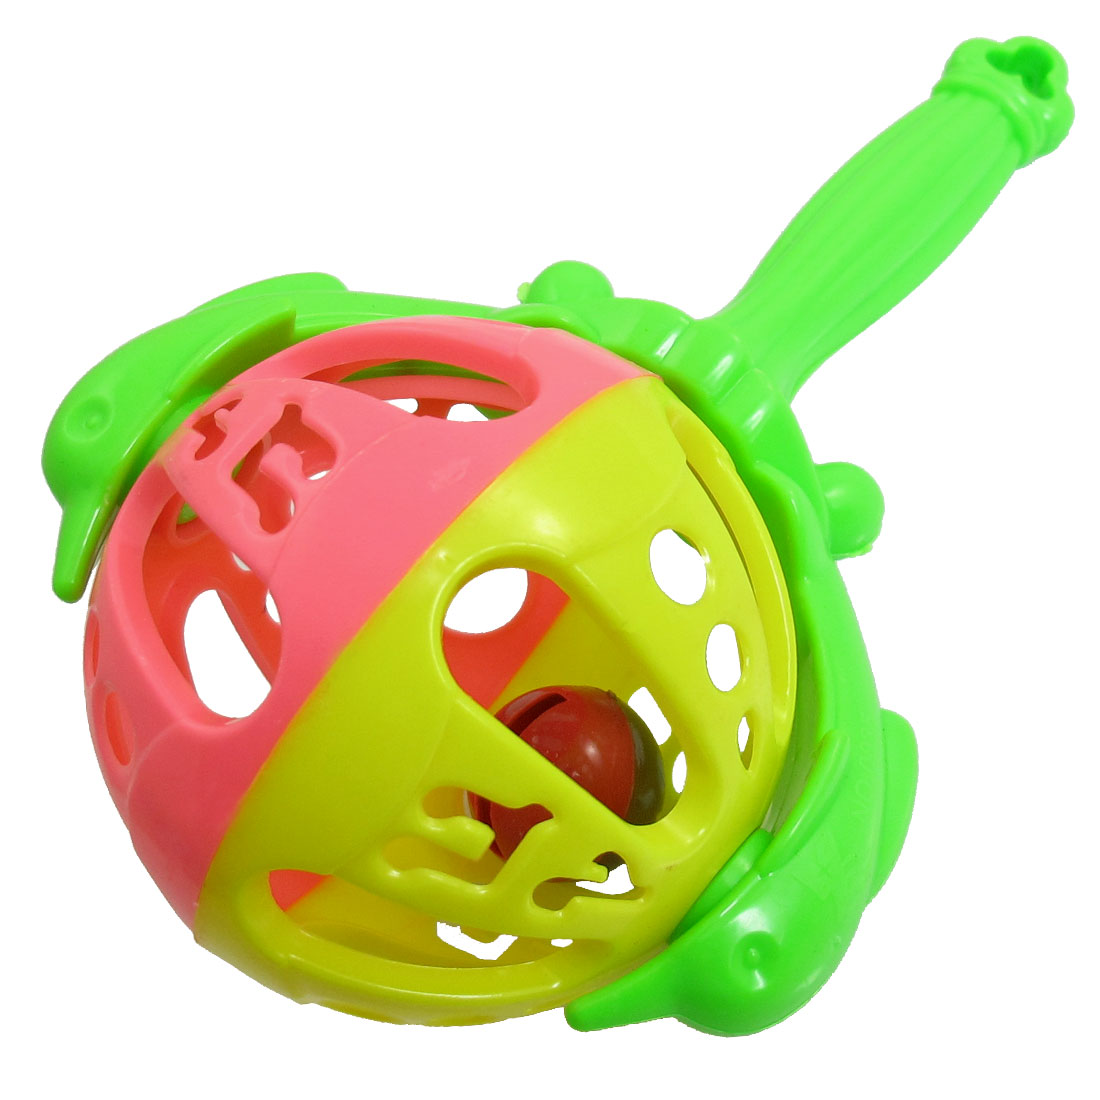 Shaking Jingle Handbell Green Plastic Dolphin Design Toddler Baby Toy